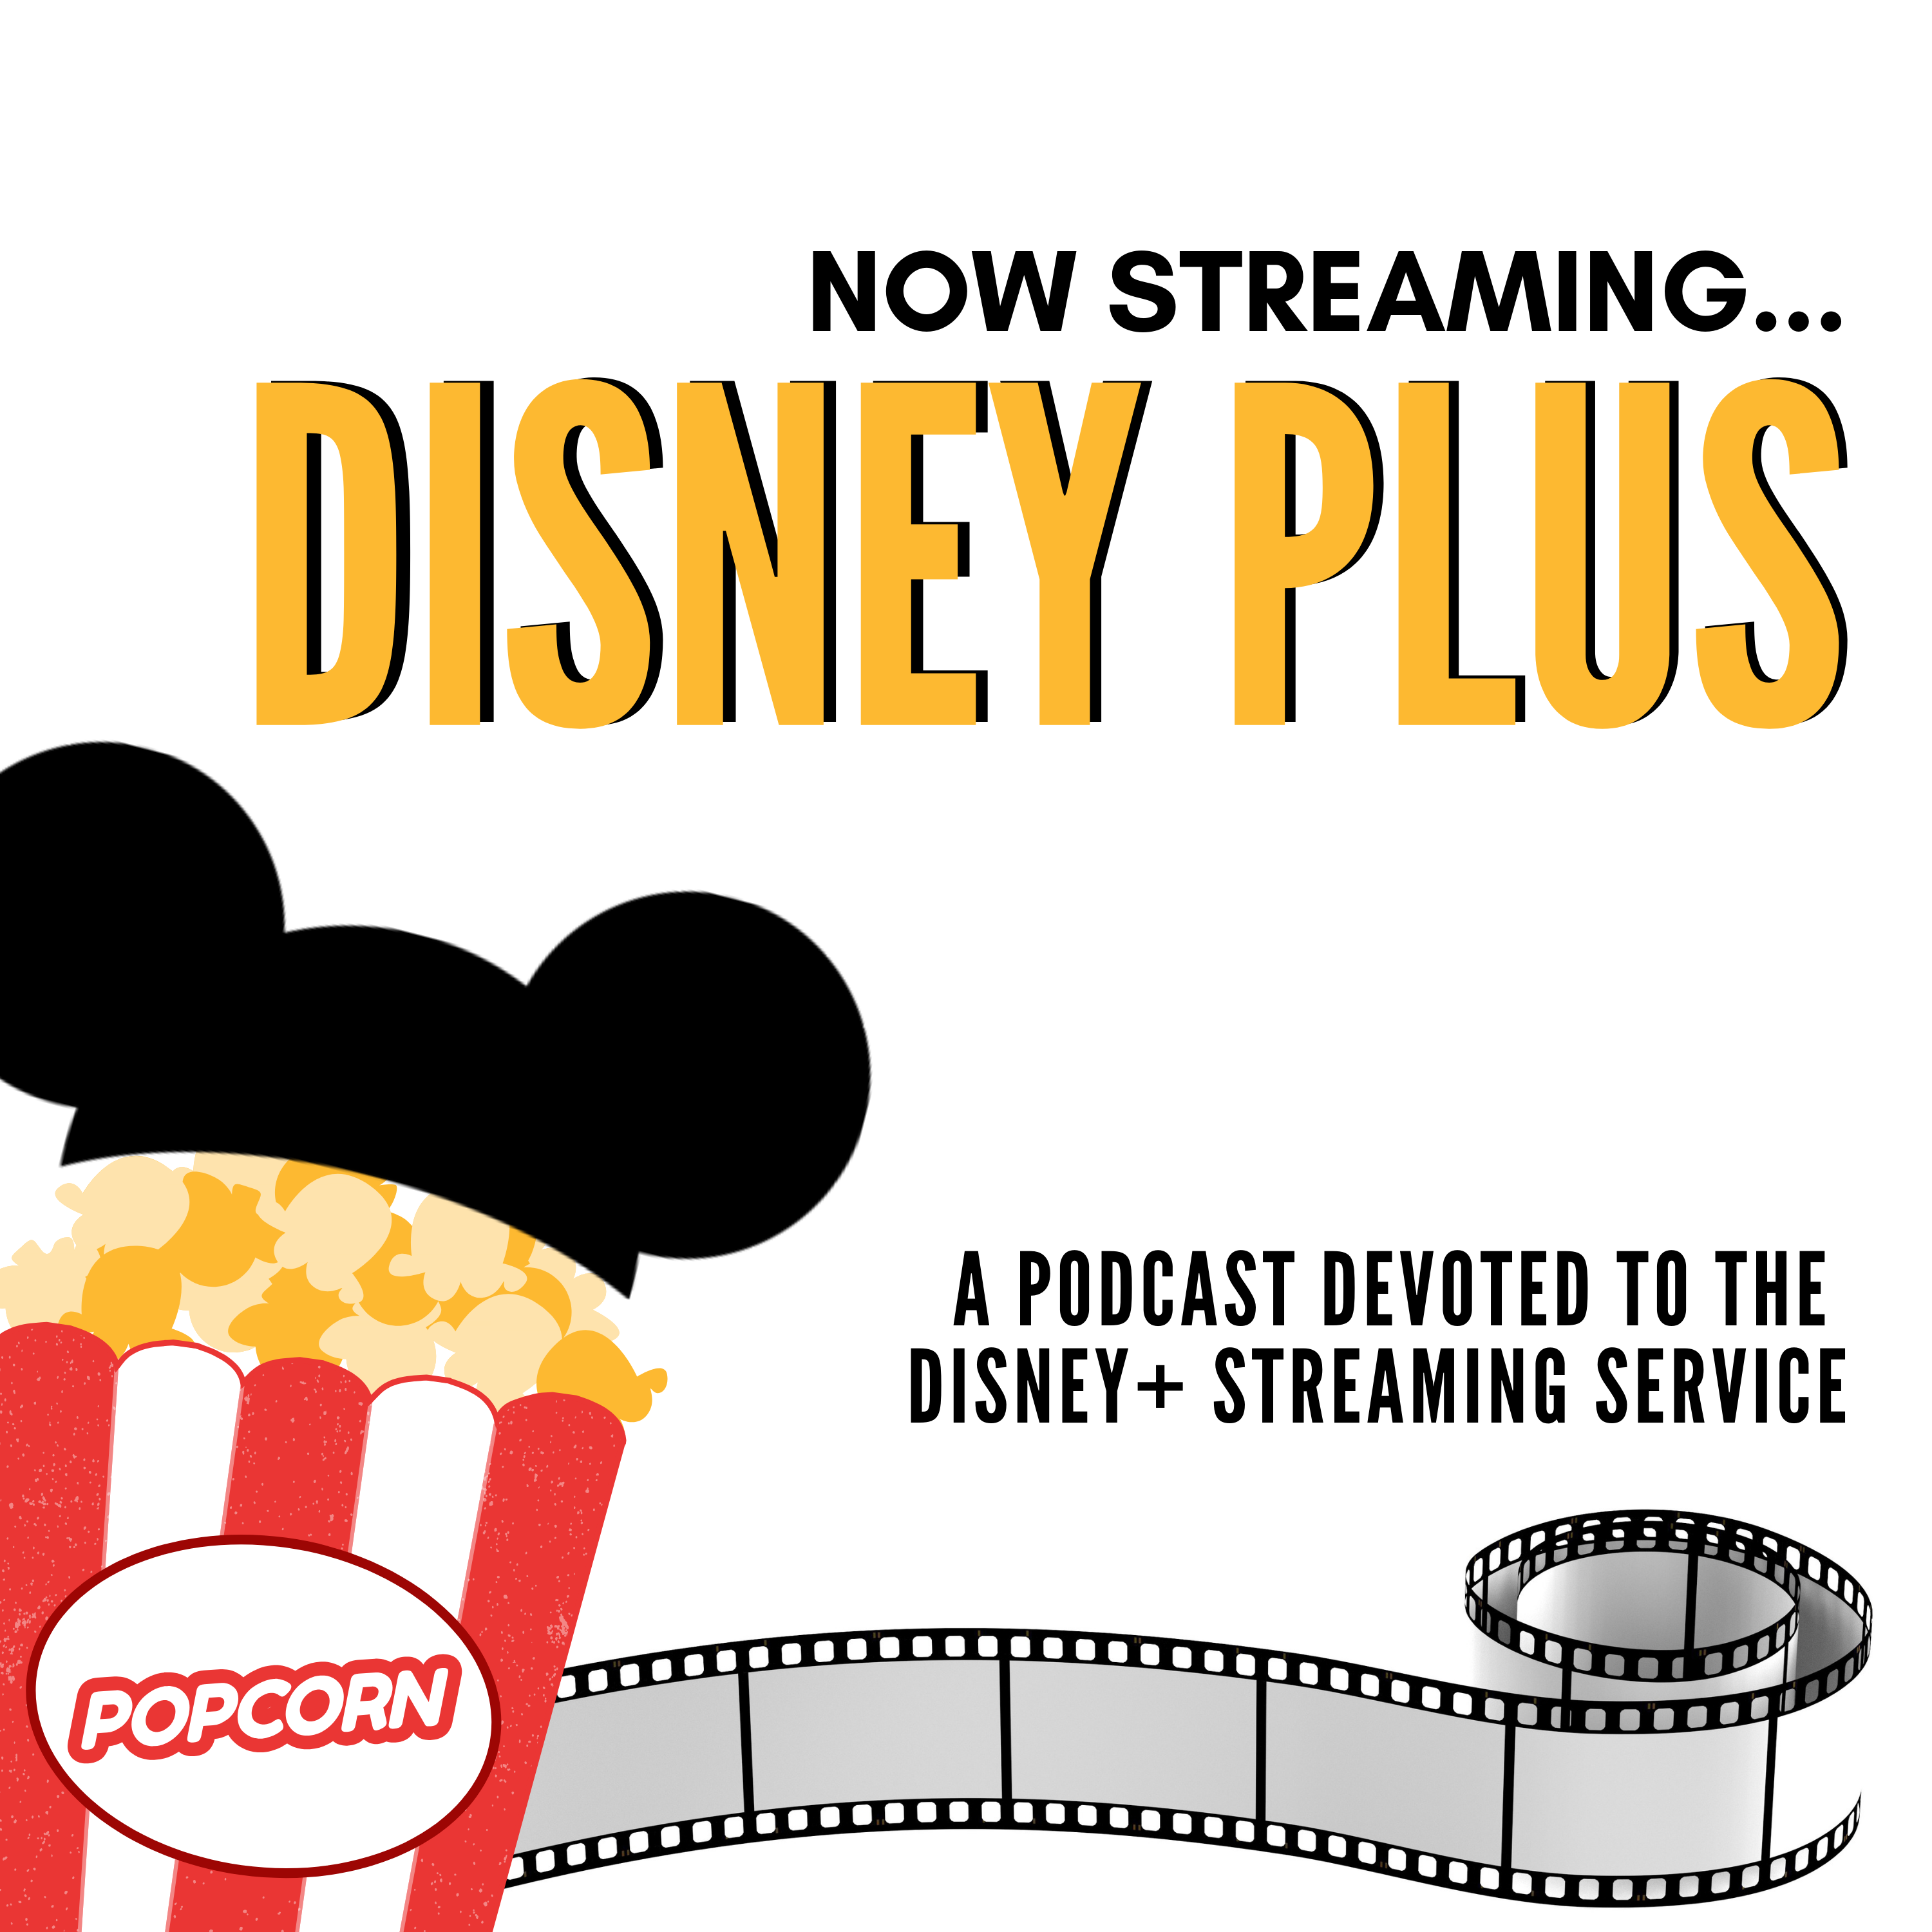 Introducing the Disney+ Streaming Service